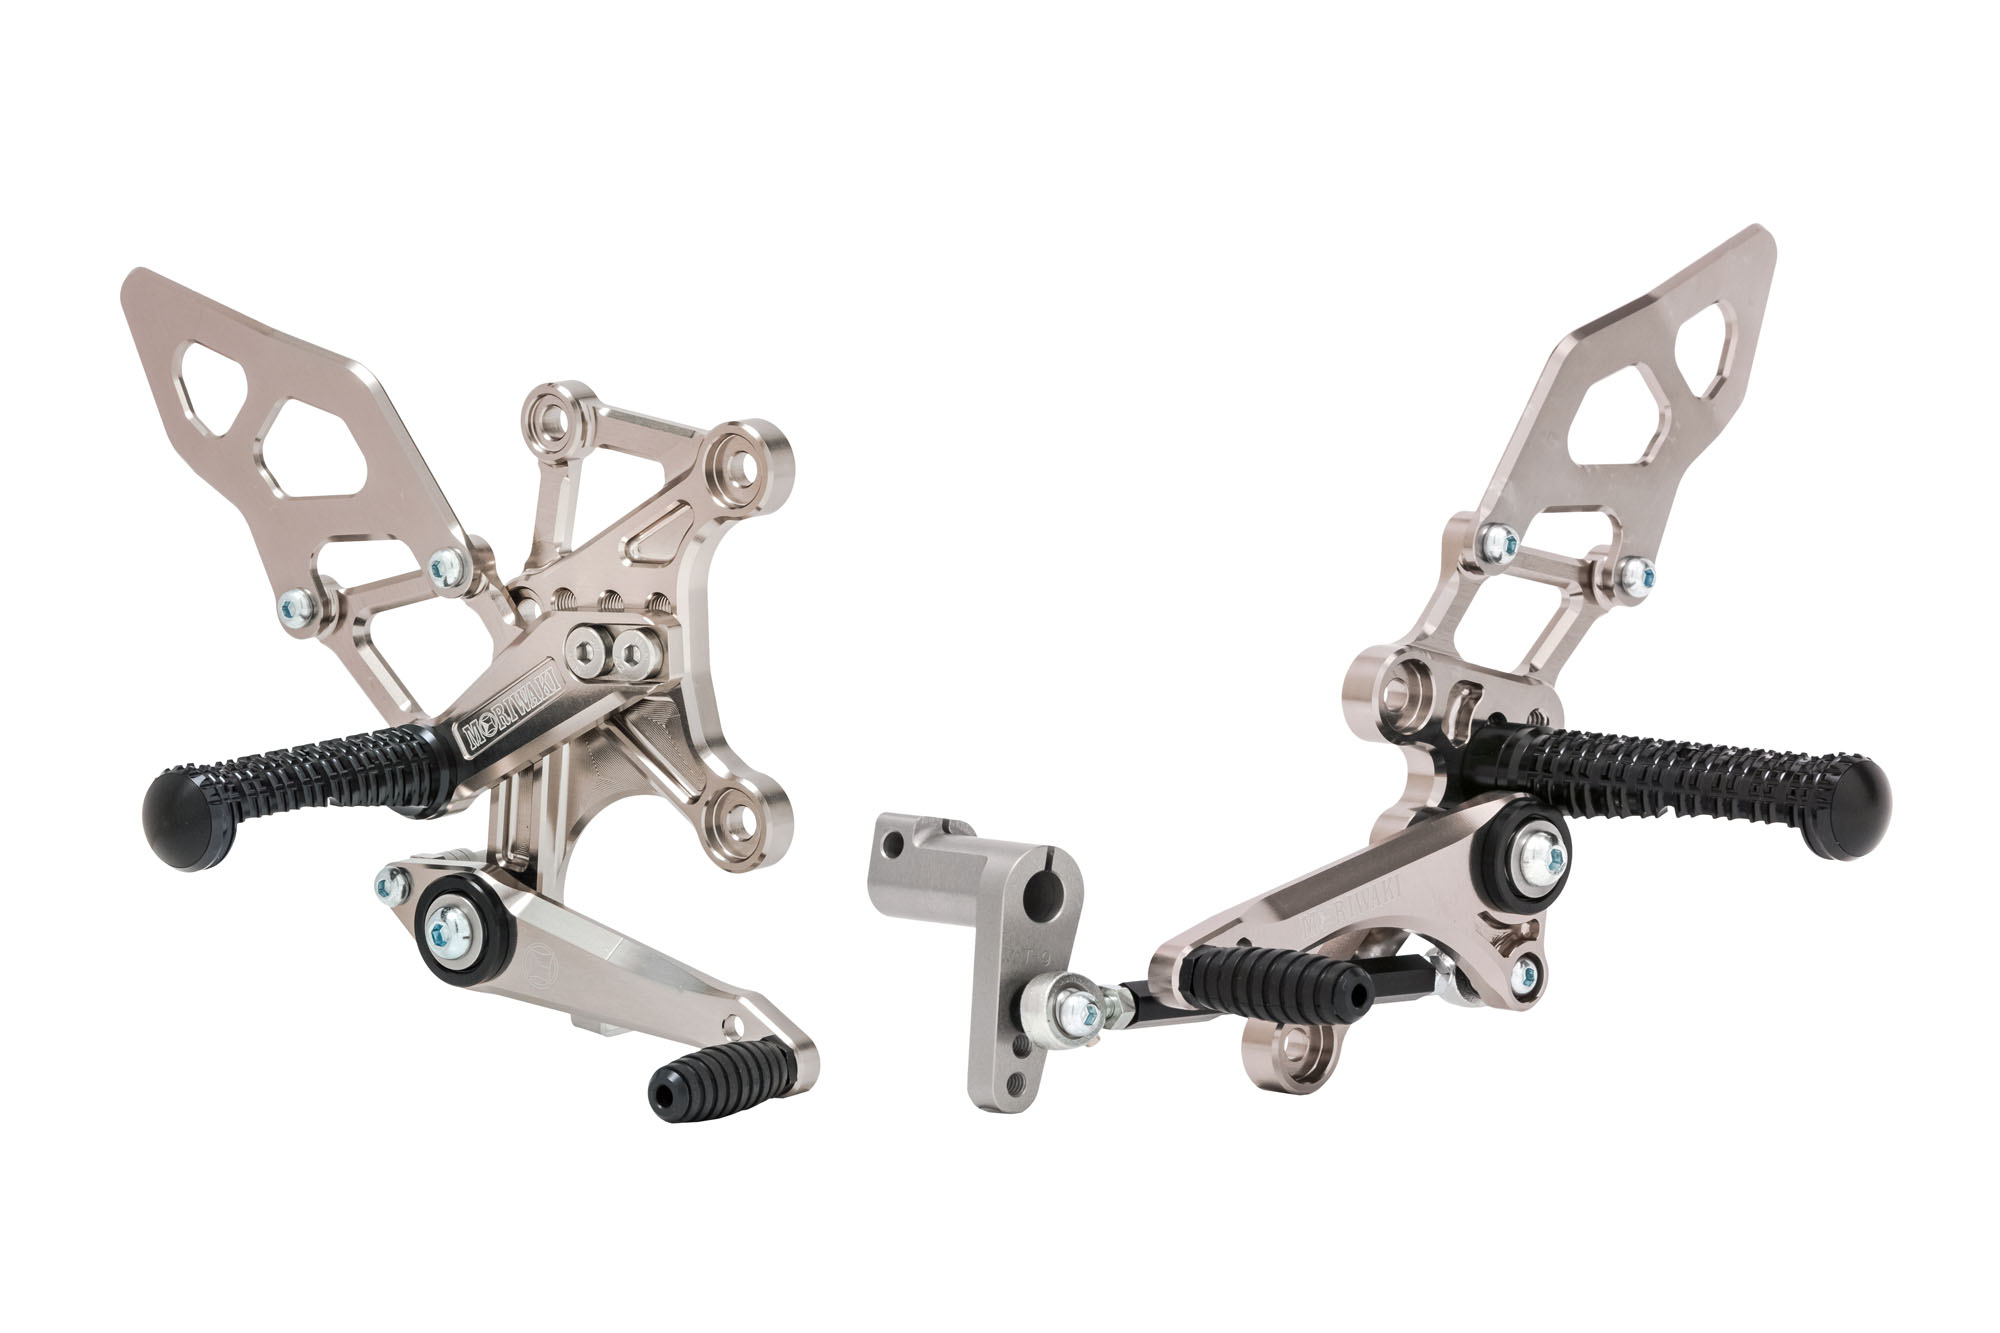 Ninja400/250 18-、Z250/400 19- BACK STEP KIT Ti Gold